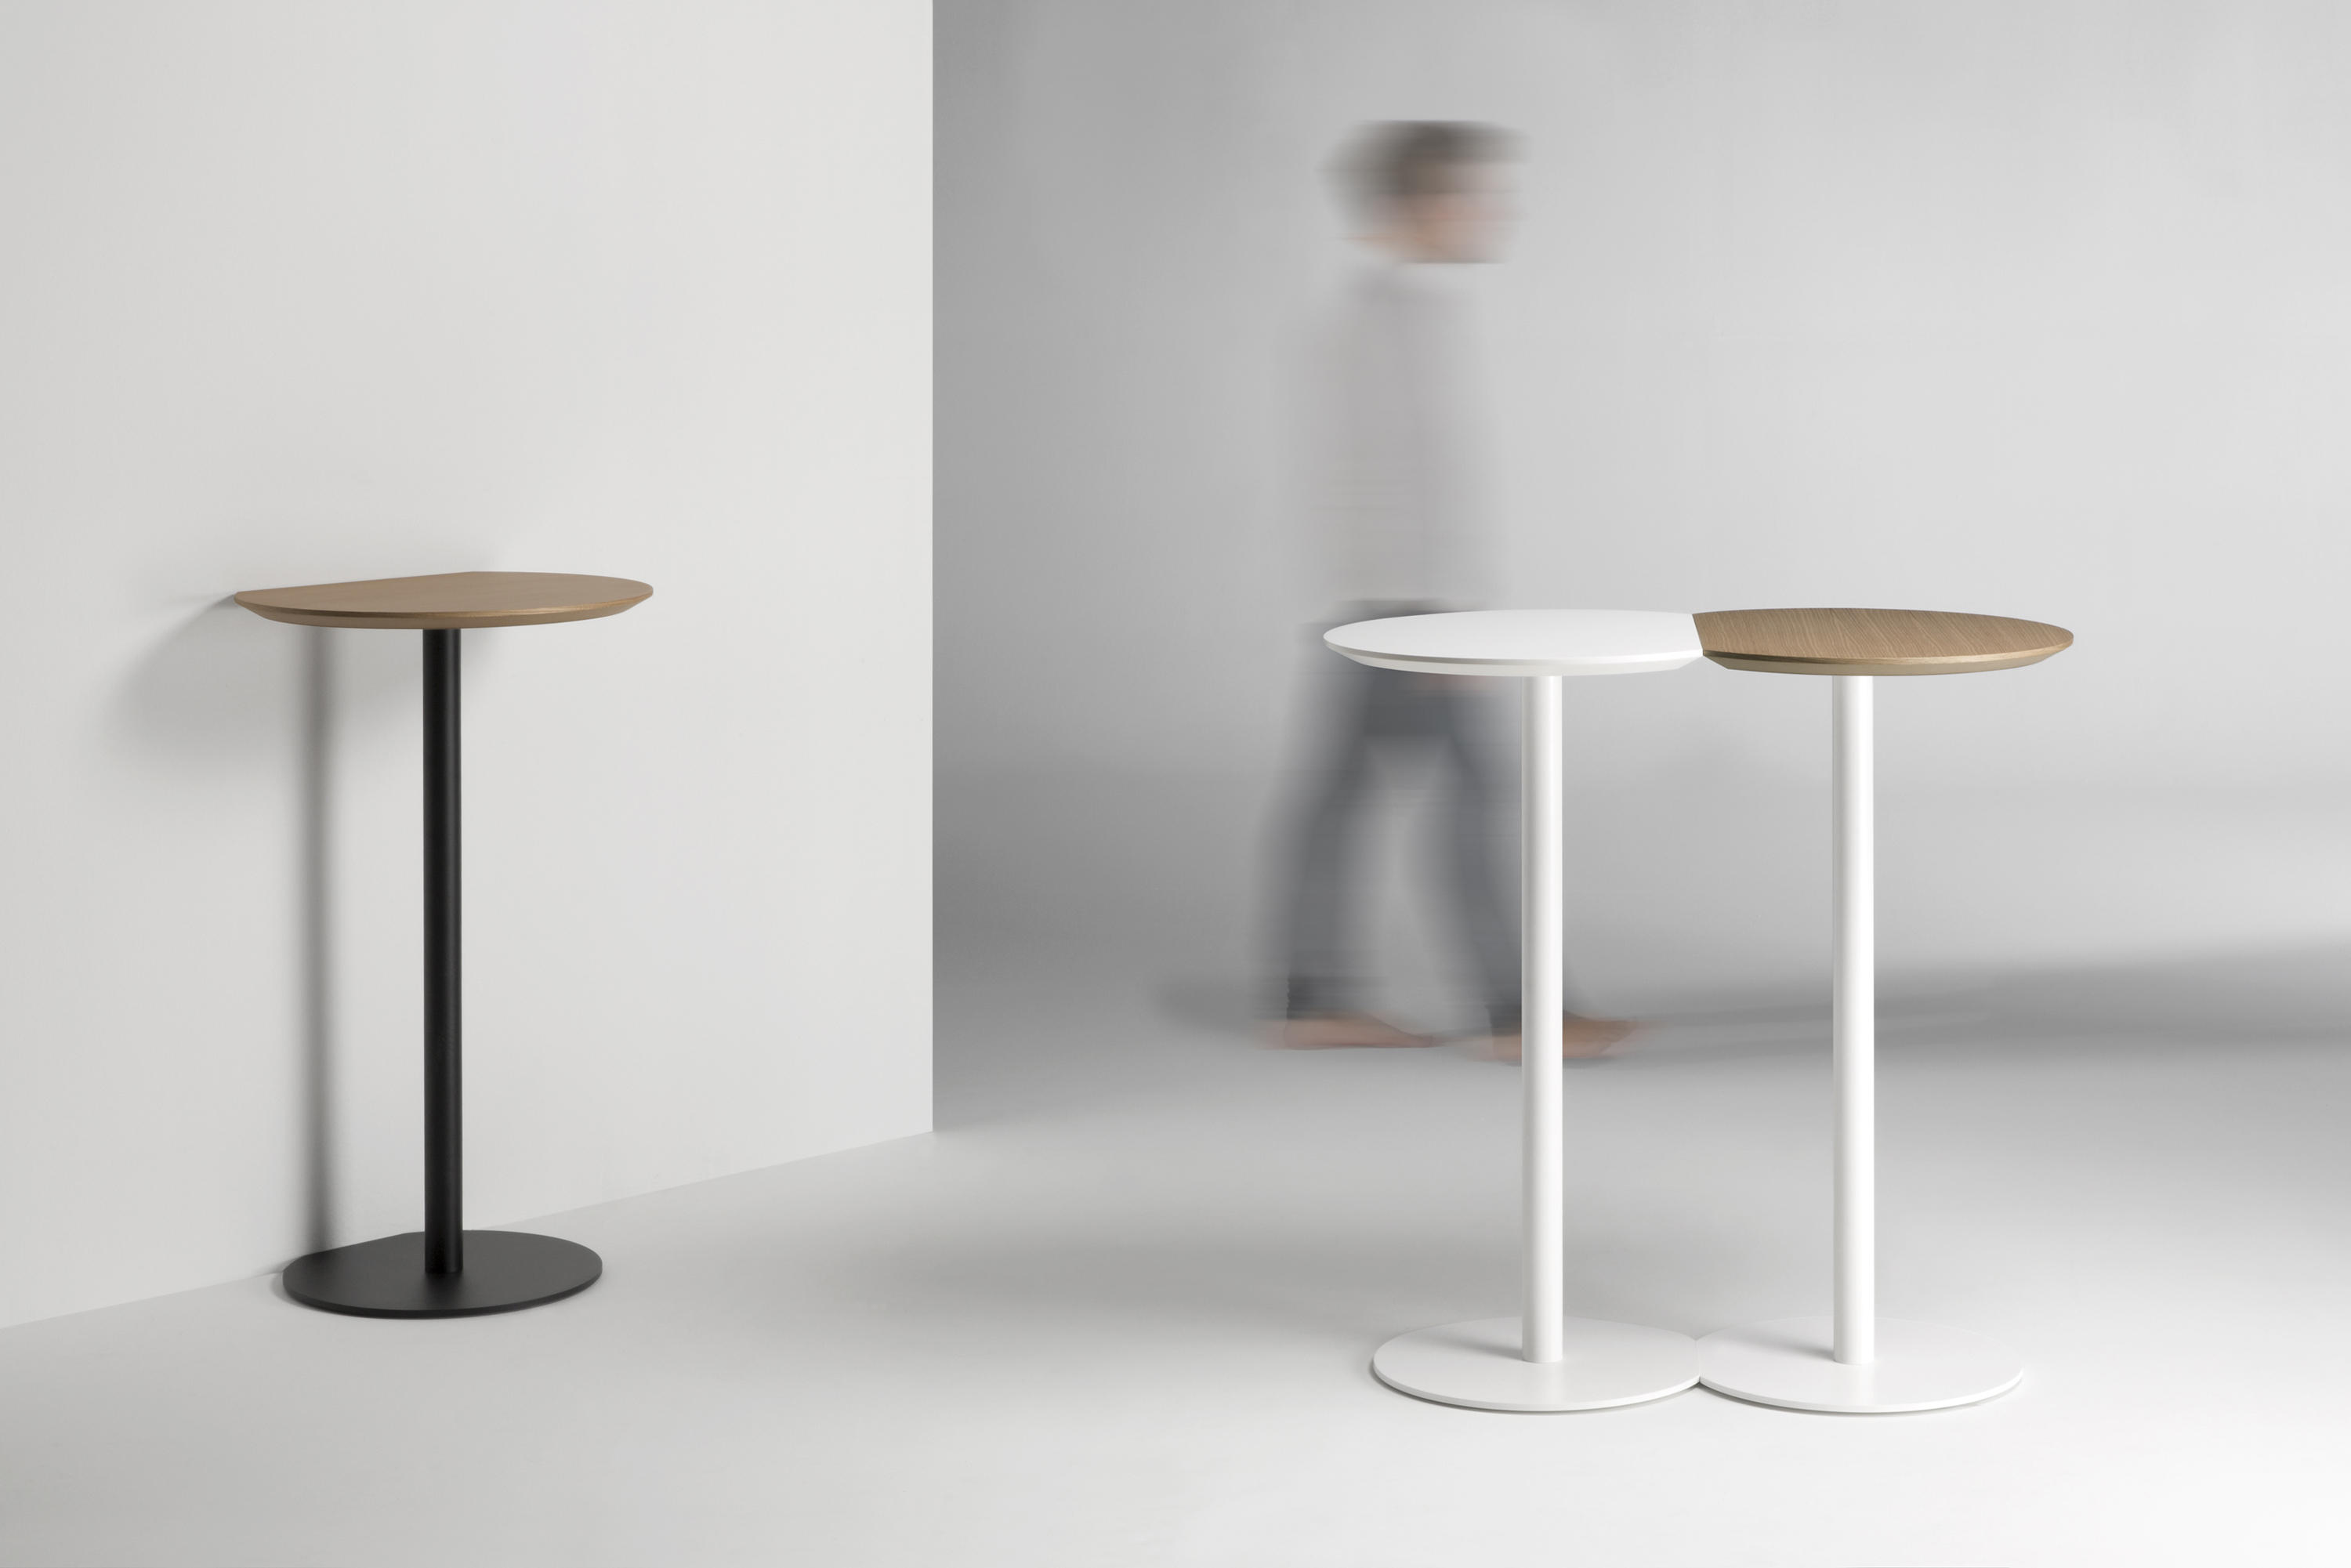 Cort coffee table side tables from kendo mobiliario - Kentto mobiliario ...